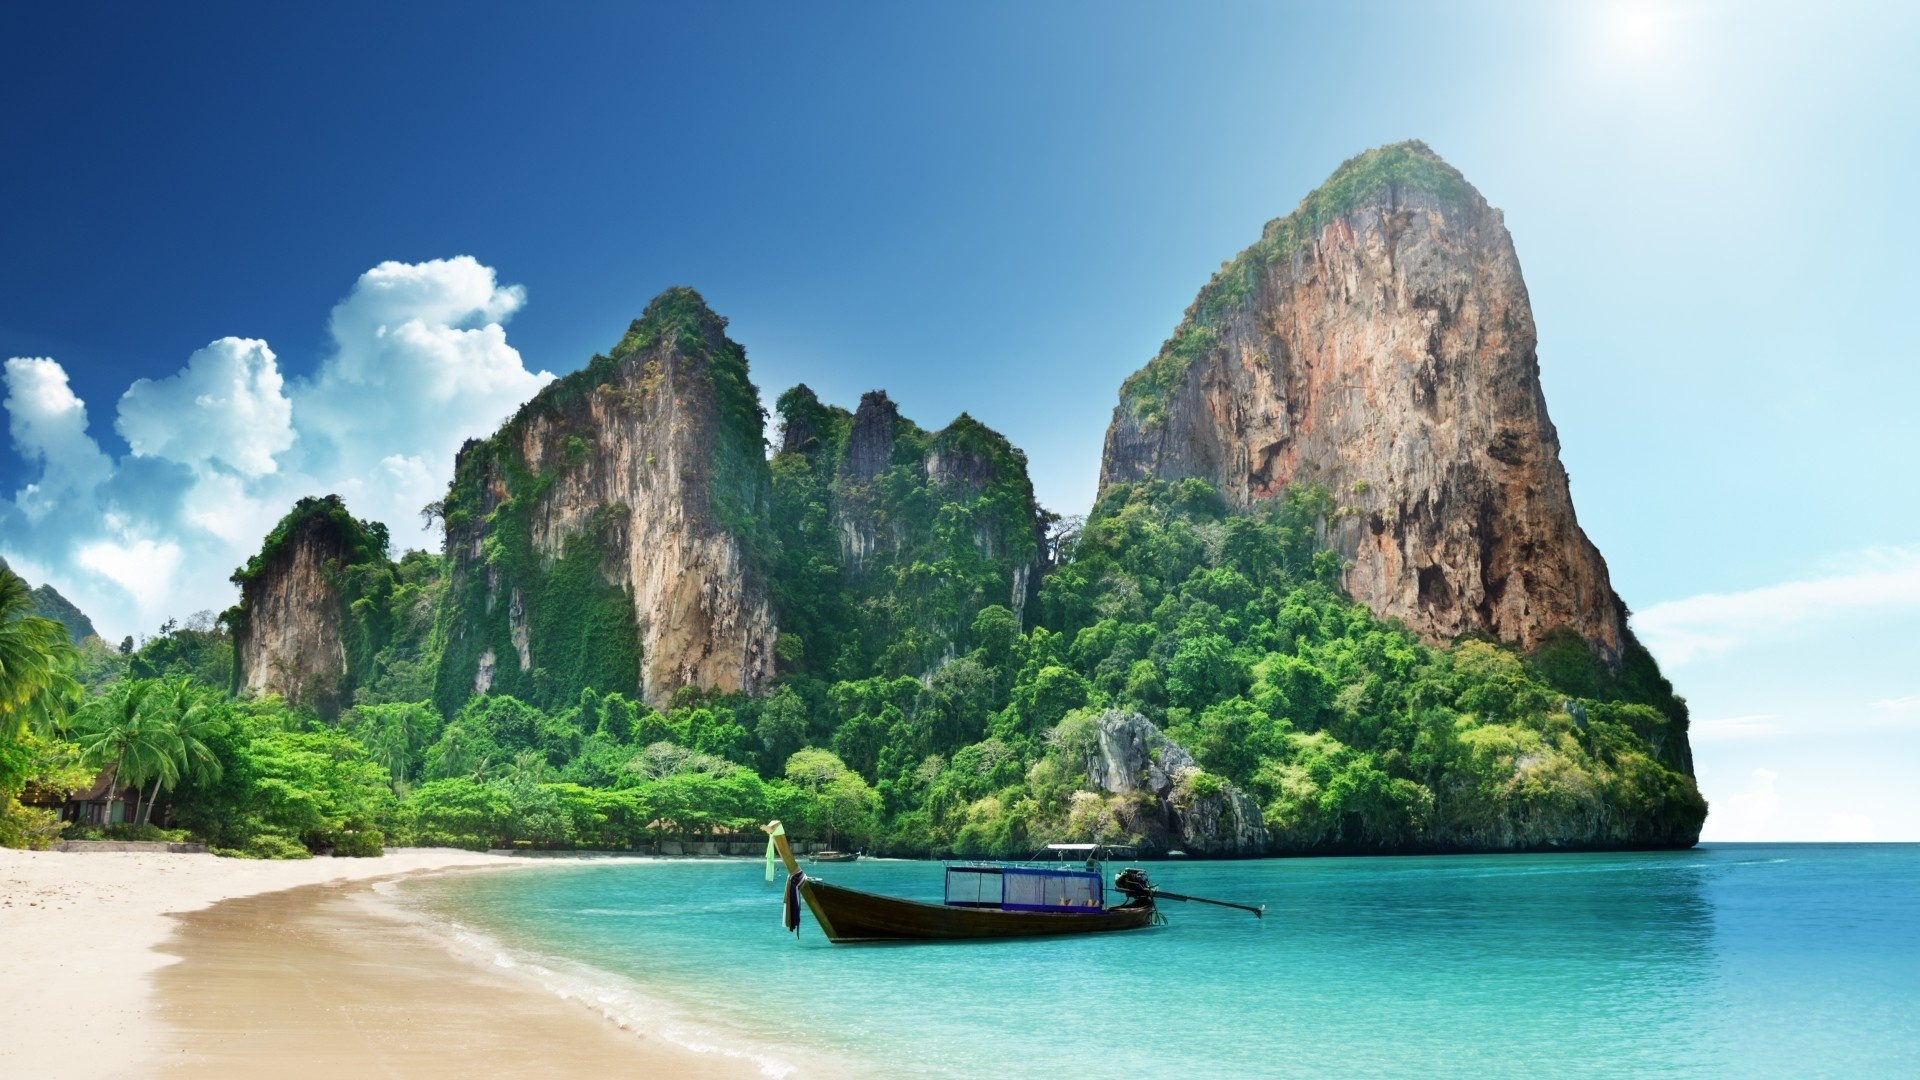 beautiful-railay-beach-thailand-desktop-background